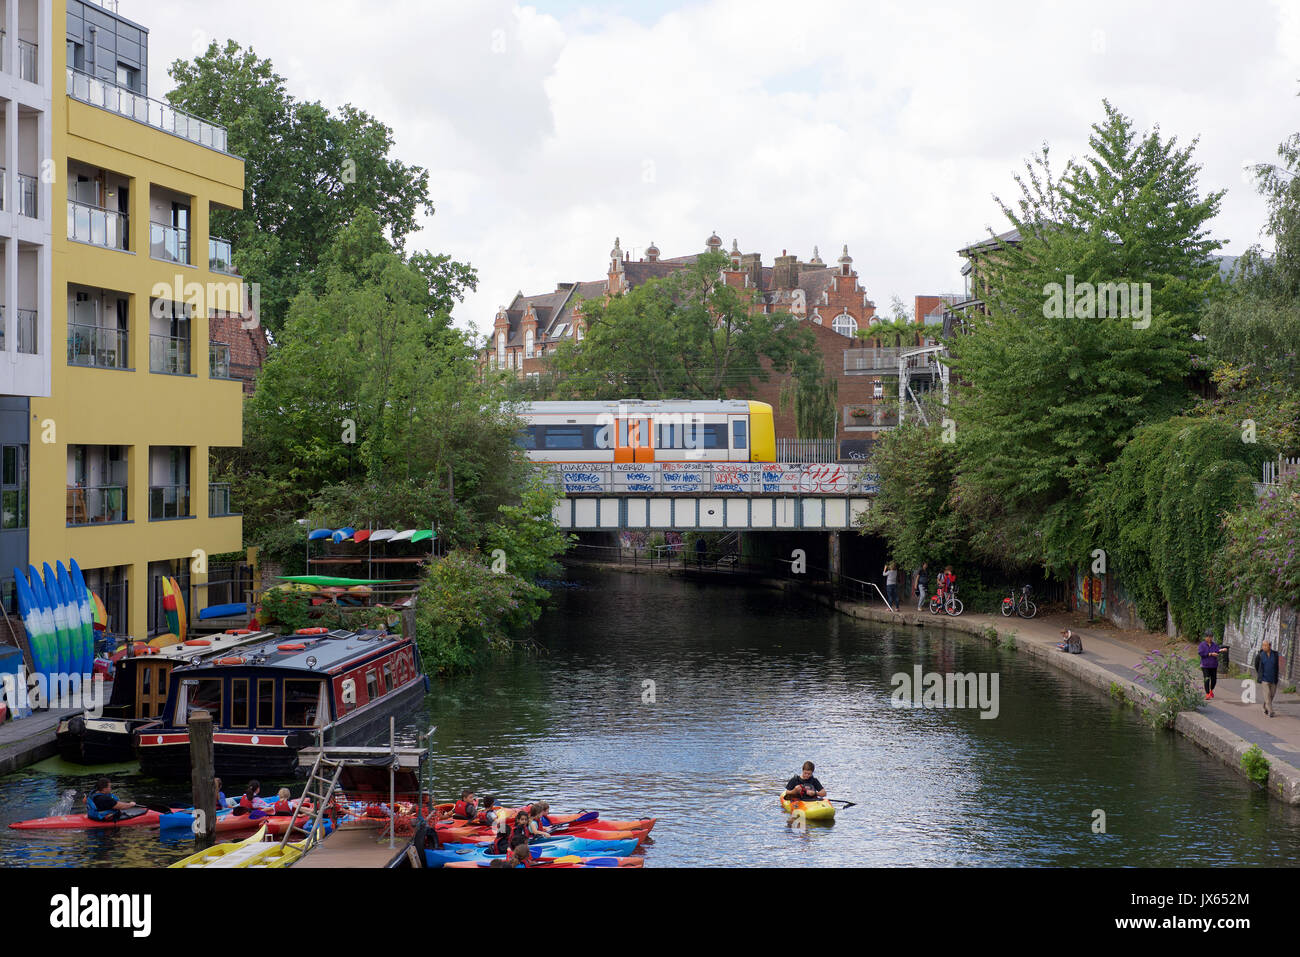 how to get to camden market by train